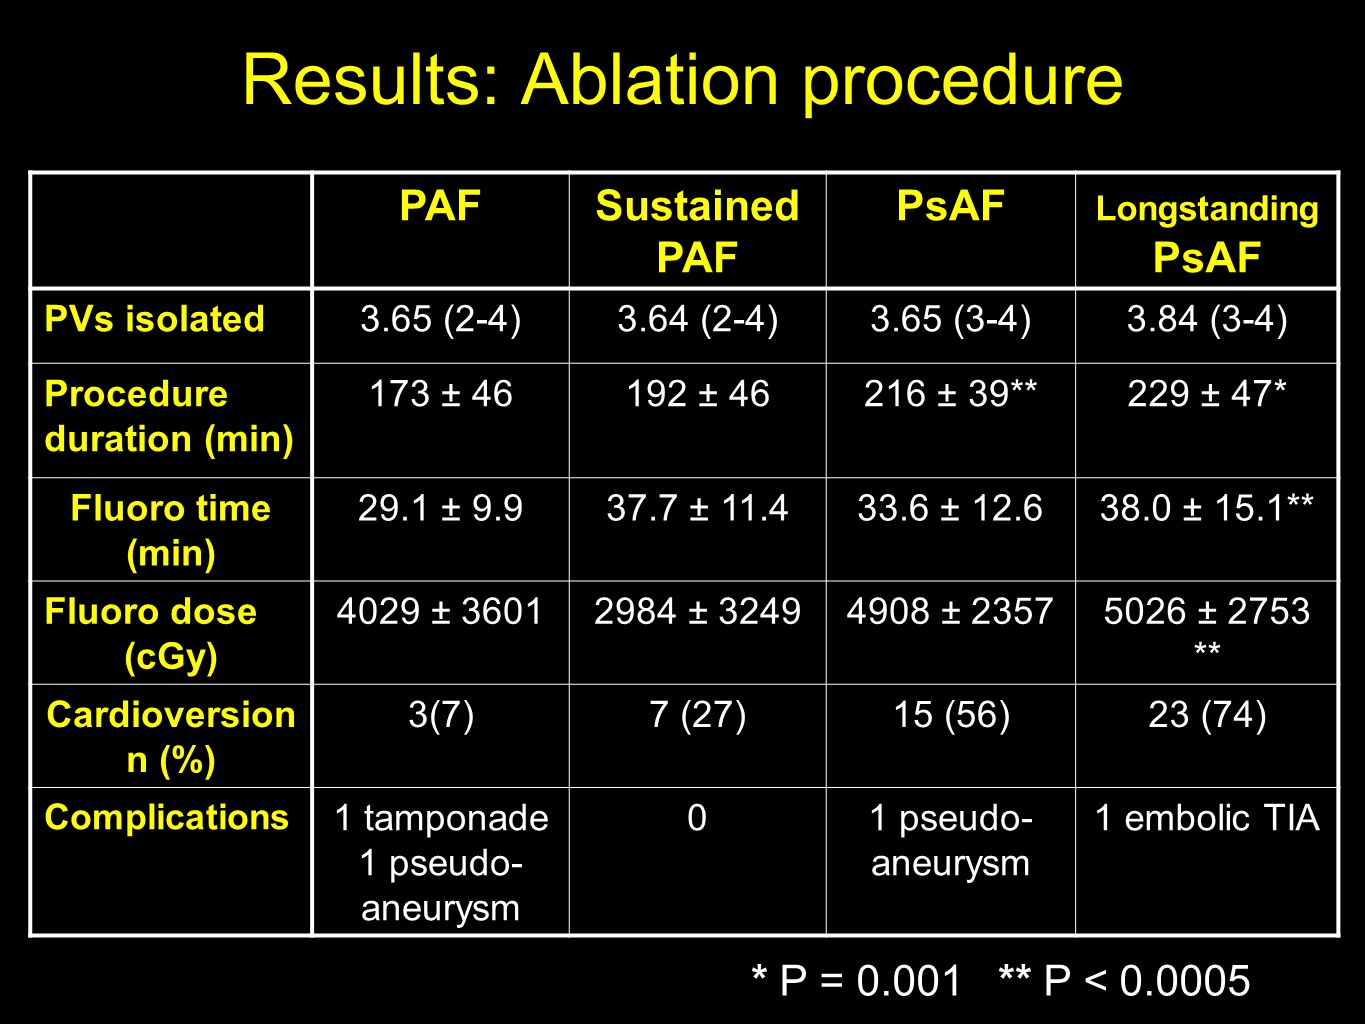 Results: Ablation procedure PAFSustained PAF PsAF Longstanding PsAF PVs isolated3.65 (2-4)3.64 (2-4)3.65 (3-4)3.84 (3-4) Procedure duration (min) 173 ± ± ± 39**229 ± 47* Fluoro time (min) 29.1 ± ± ± ± 15.1** Fluoro dose (cGy) 4029 ± ± ± ± 2753 ** Cardioversion n (%) 3(7)7 (27)15 (56)23 (74) Complications 1 tamponade 1 pseudo- aneurysm 0 1 embolic TIA * P = ** P <